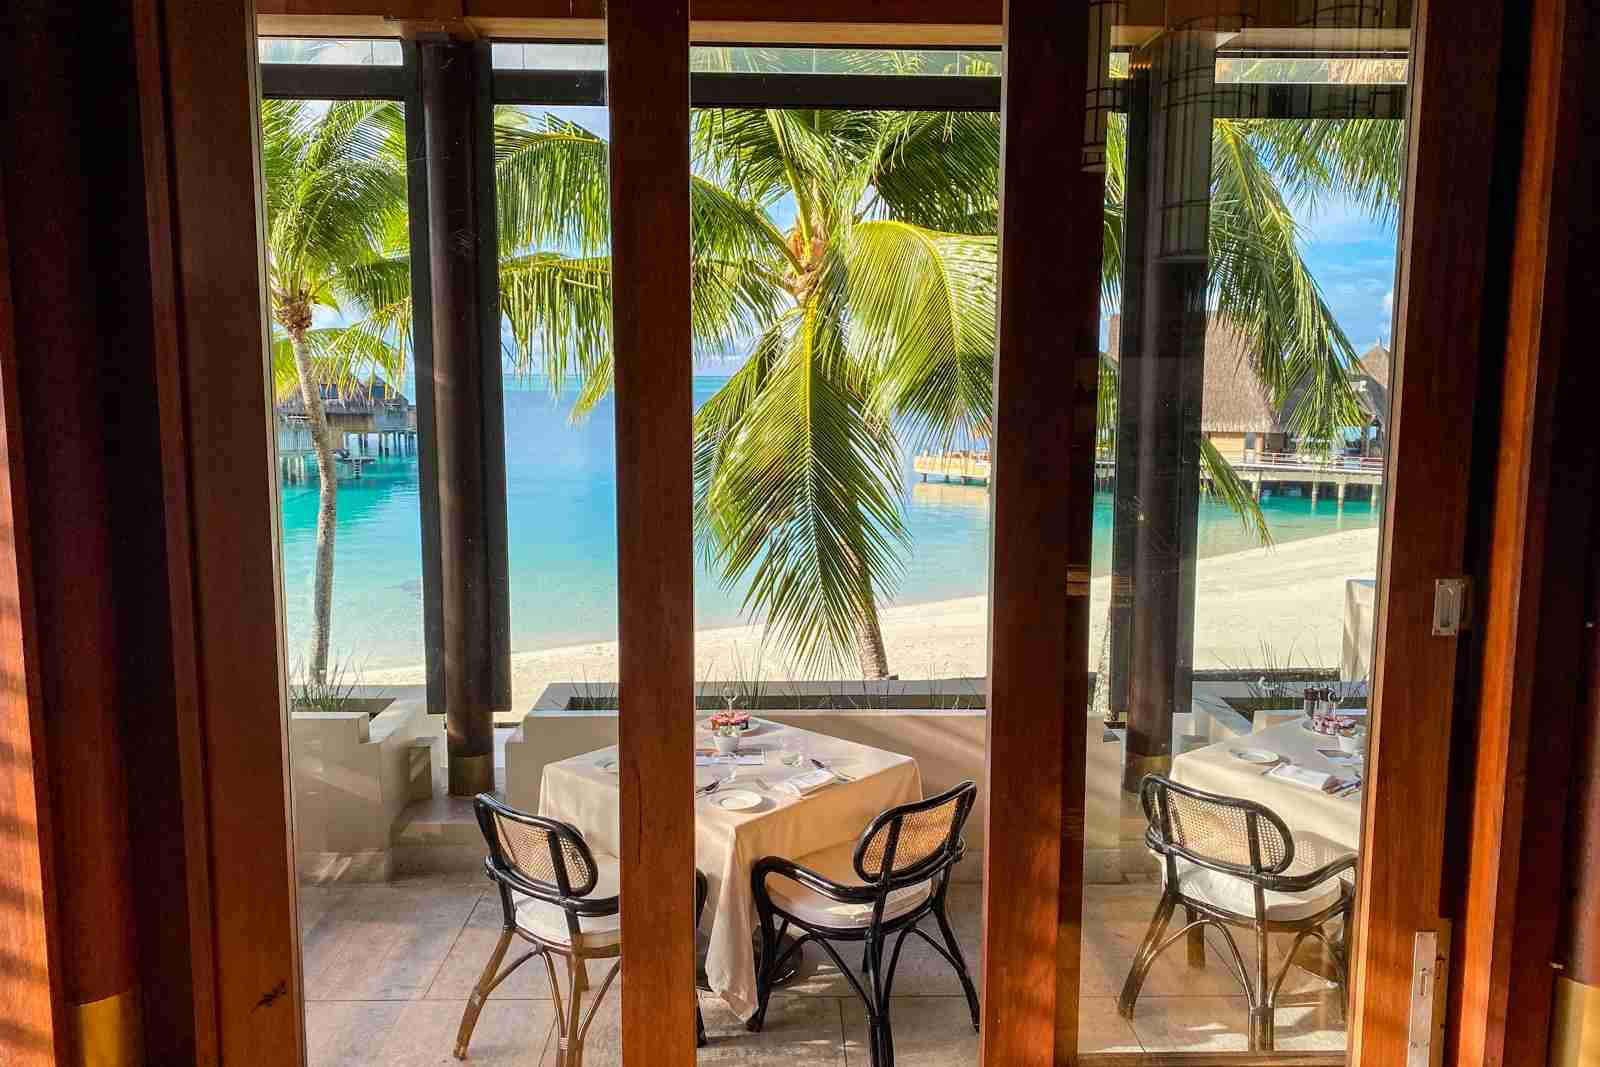 Breakfast with a view was free at Conrad Bora Bora thanks to Hilton Gold status (Photo by Summer Hull/The Points Guy)